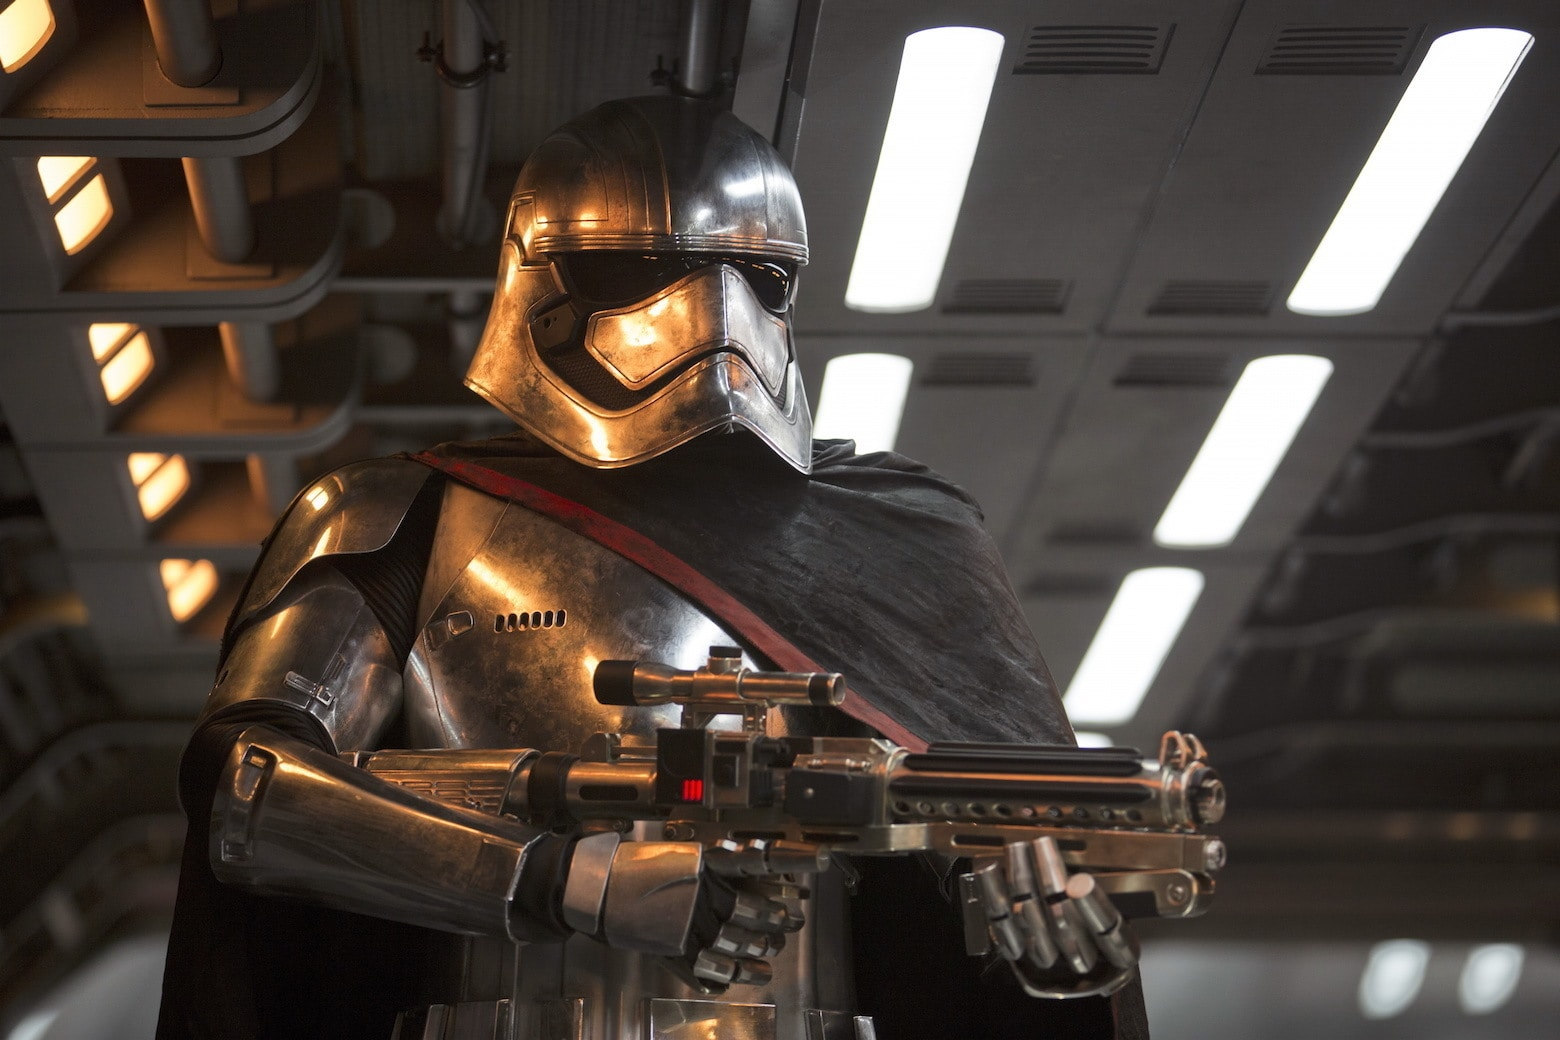 Gwendoline Christie as Captain Phasma of the First Order in chrome armor